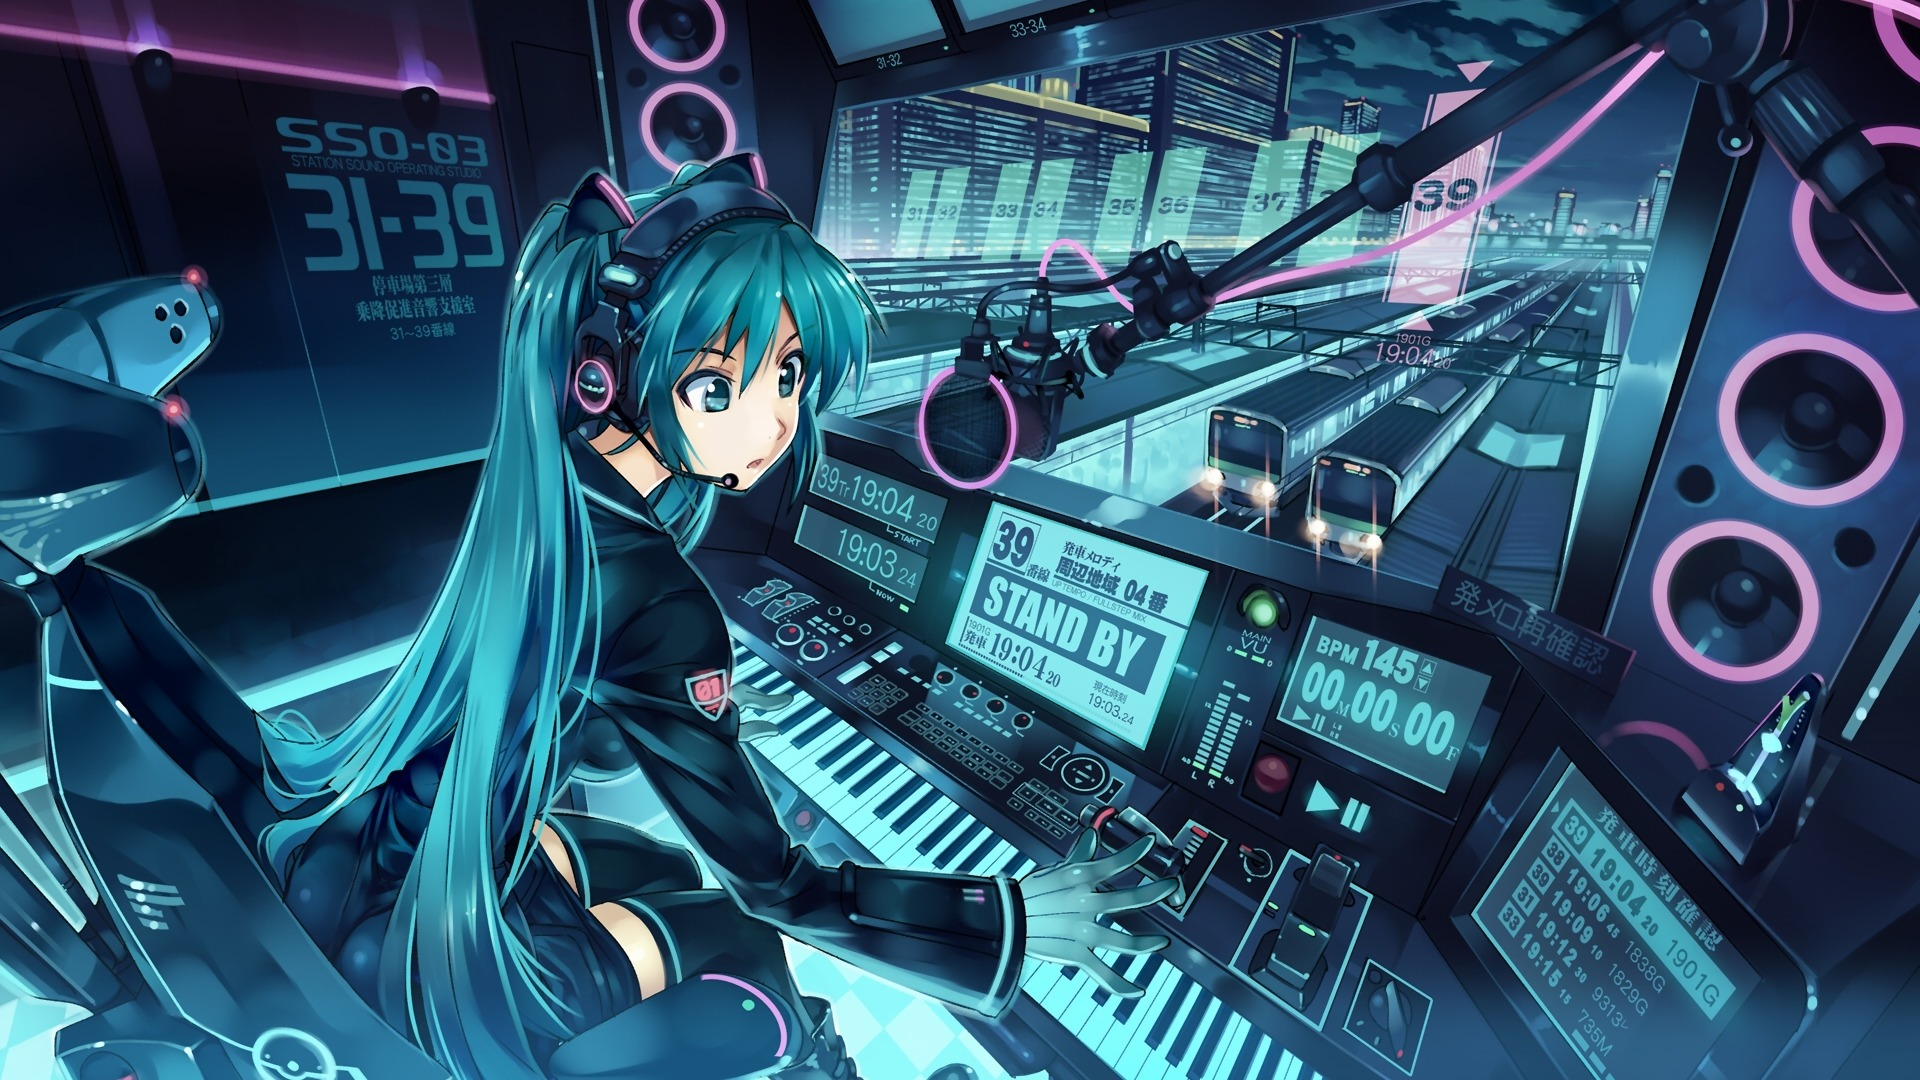 Anime wallpaper anime linux style in the world - Anime backdrop wallpaper ...